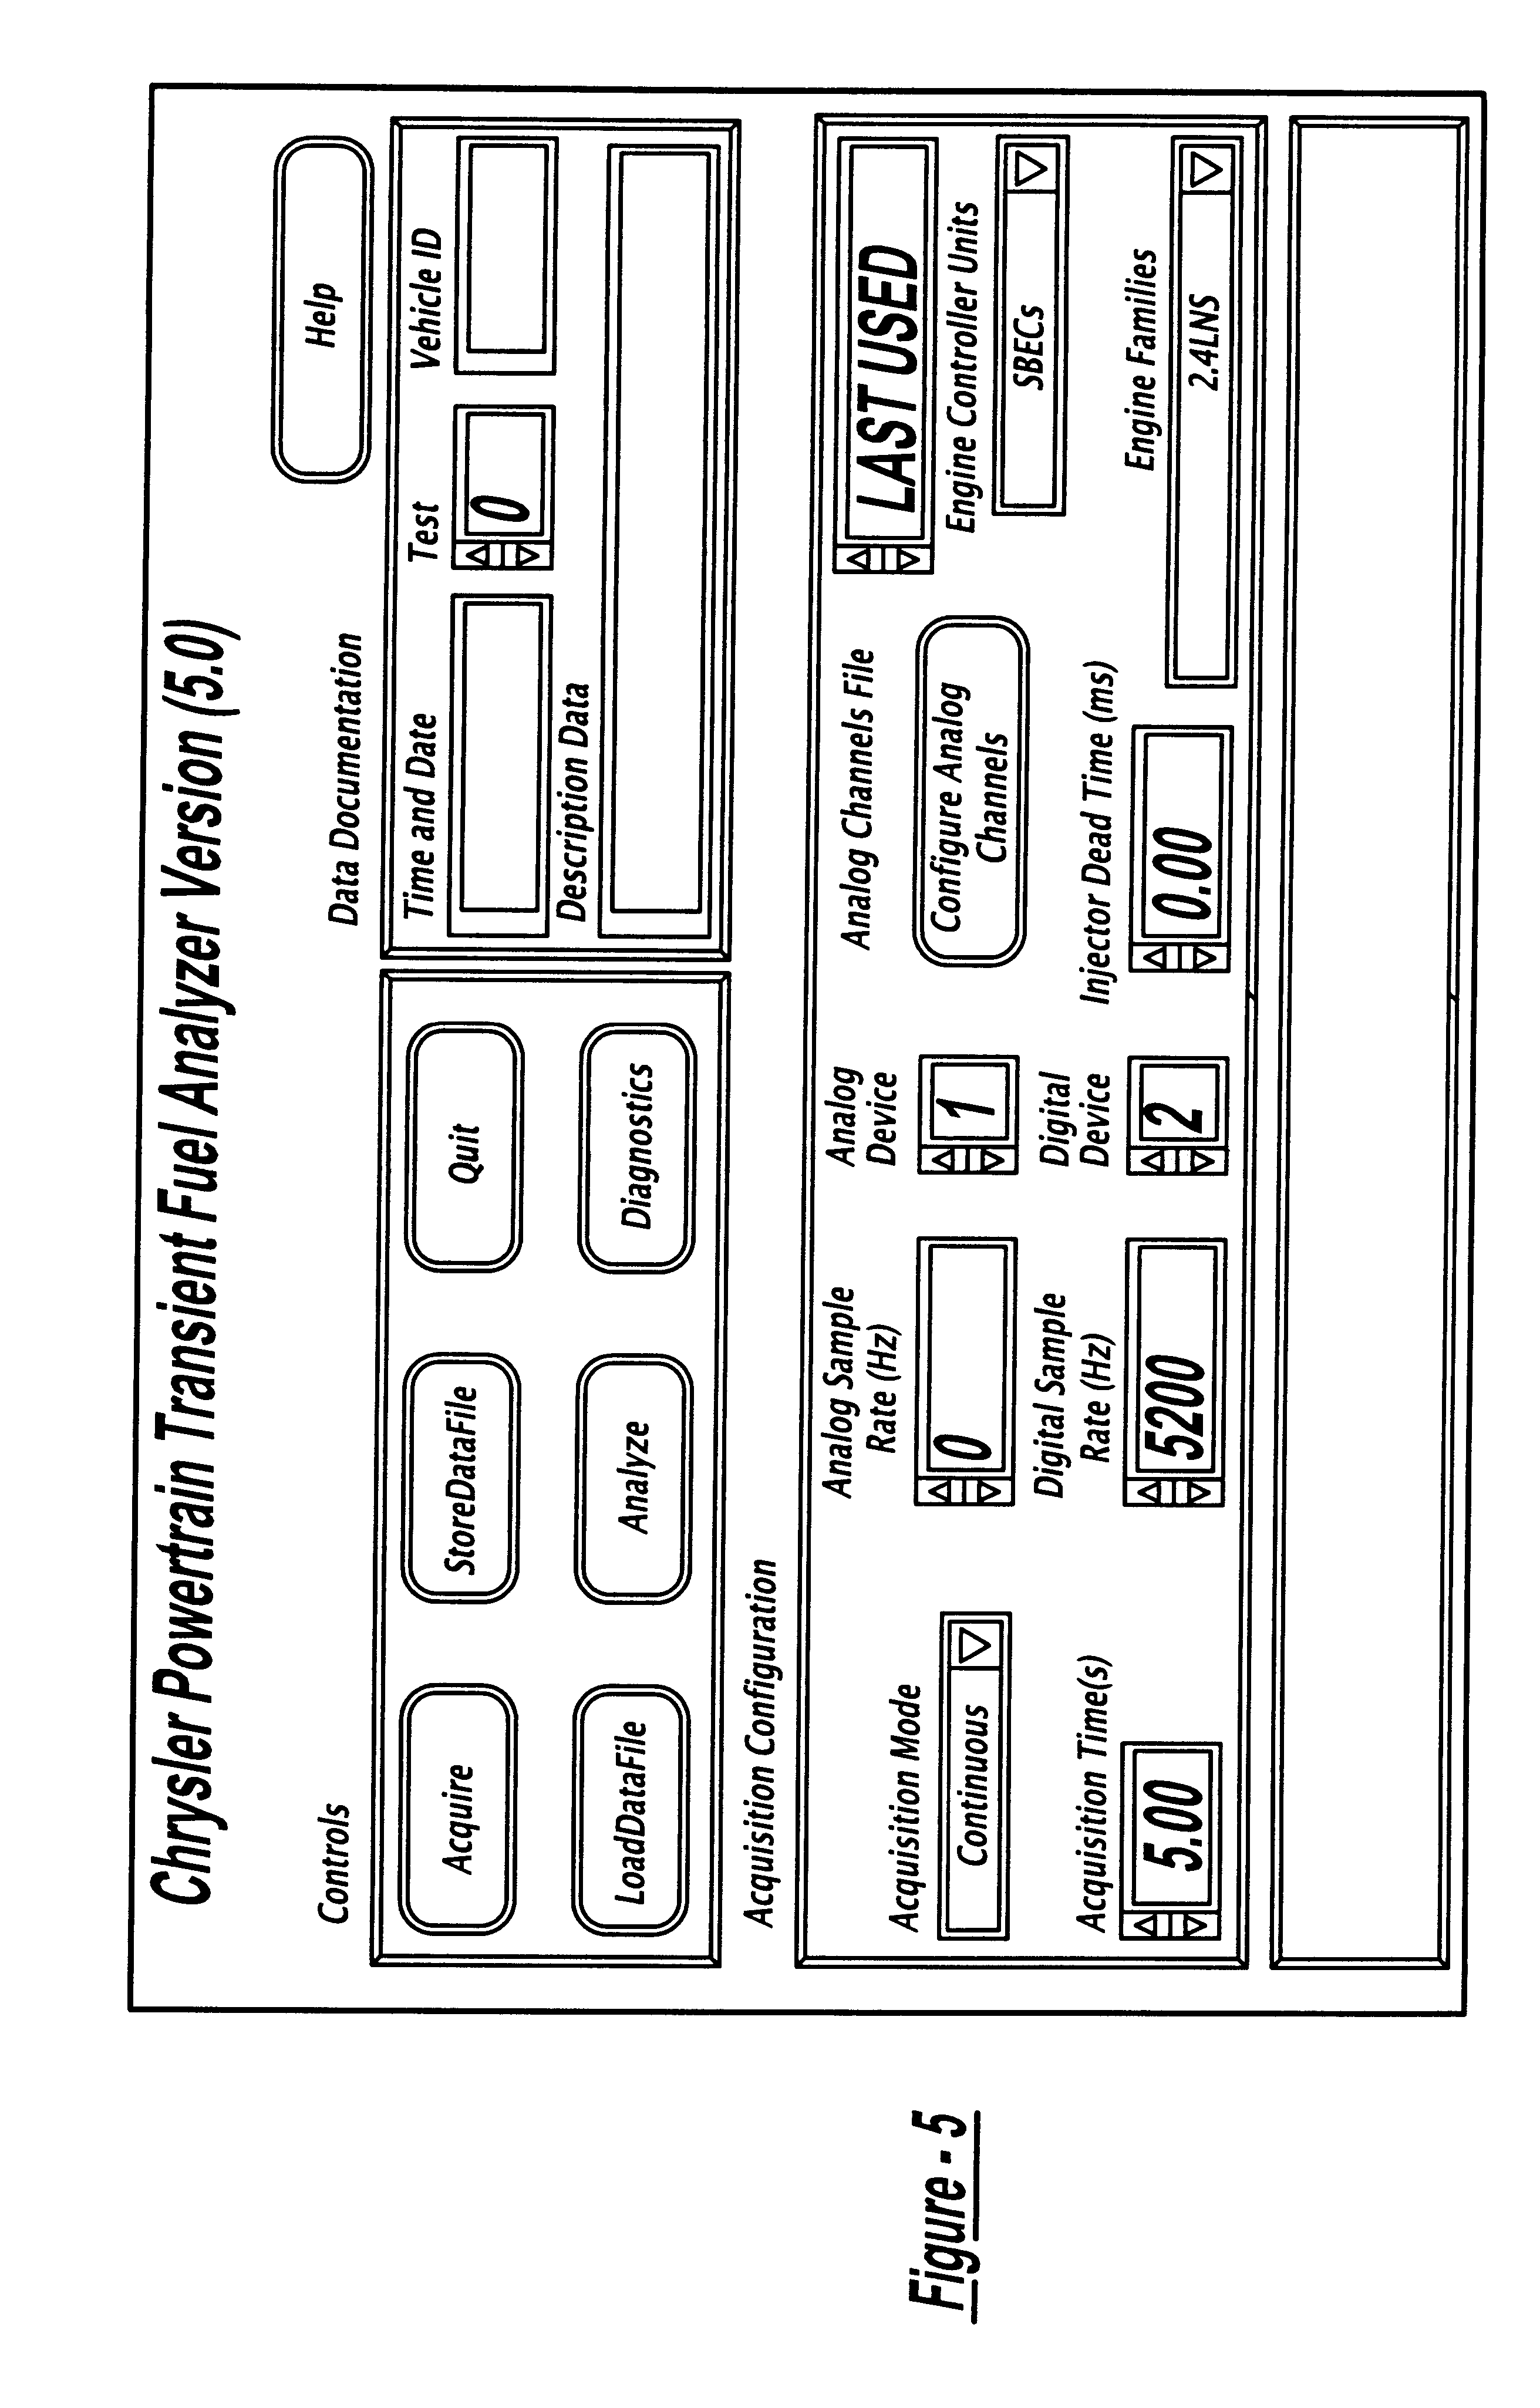 Automotive Data Acquisition System : Patent us vehicle data acquisition and analysis